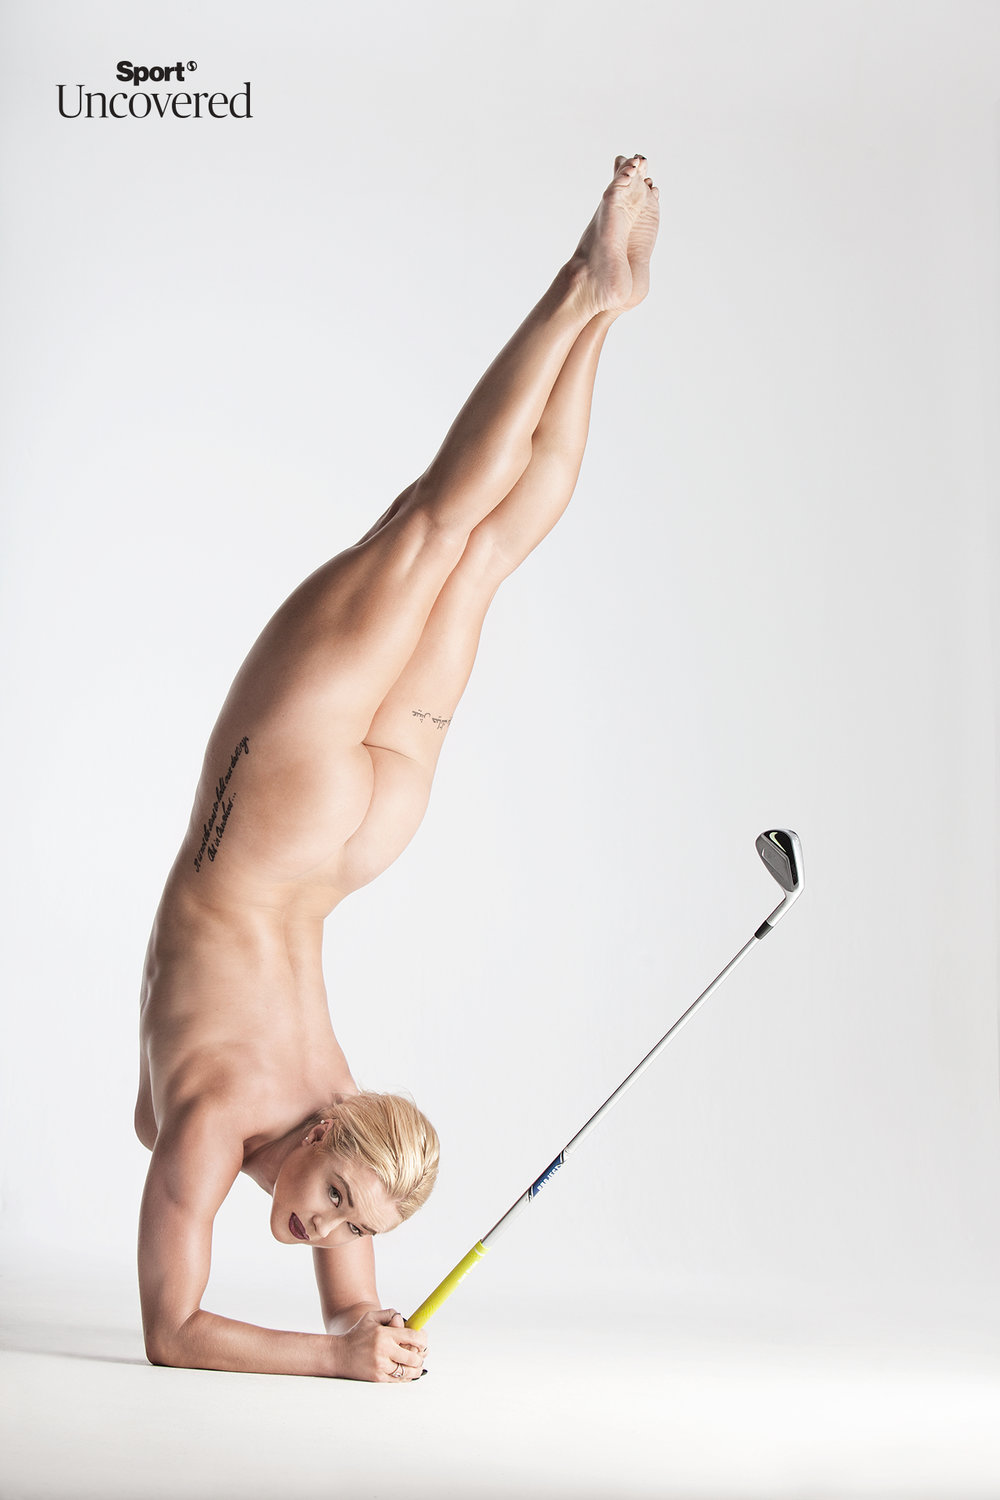 Carly Booth - Golfer.jpg